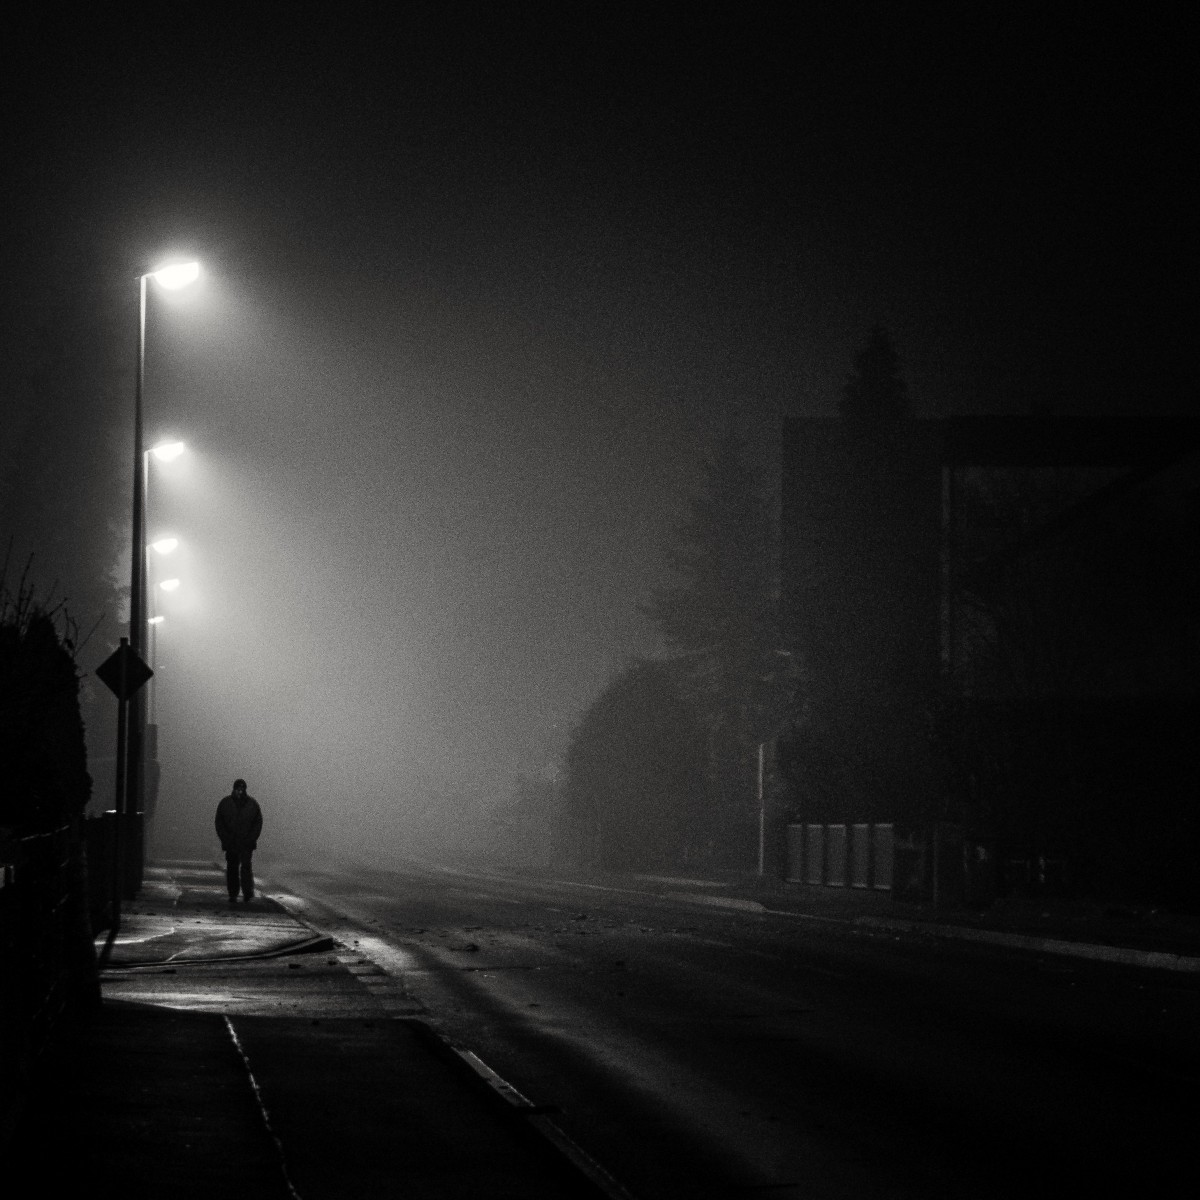 Lonely Girl Walking In Rain Wallpaper Free Images Cold Winter Black And White Fog Night